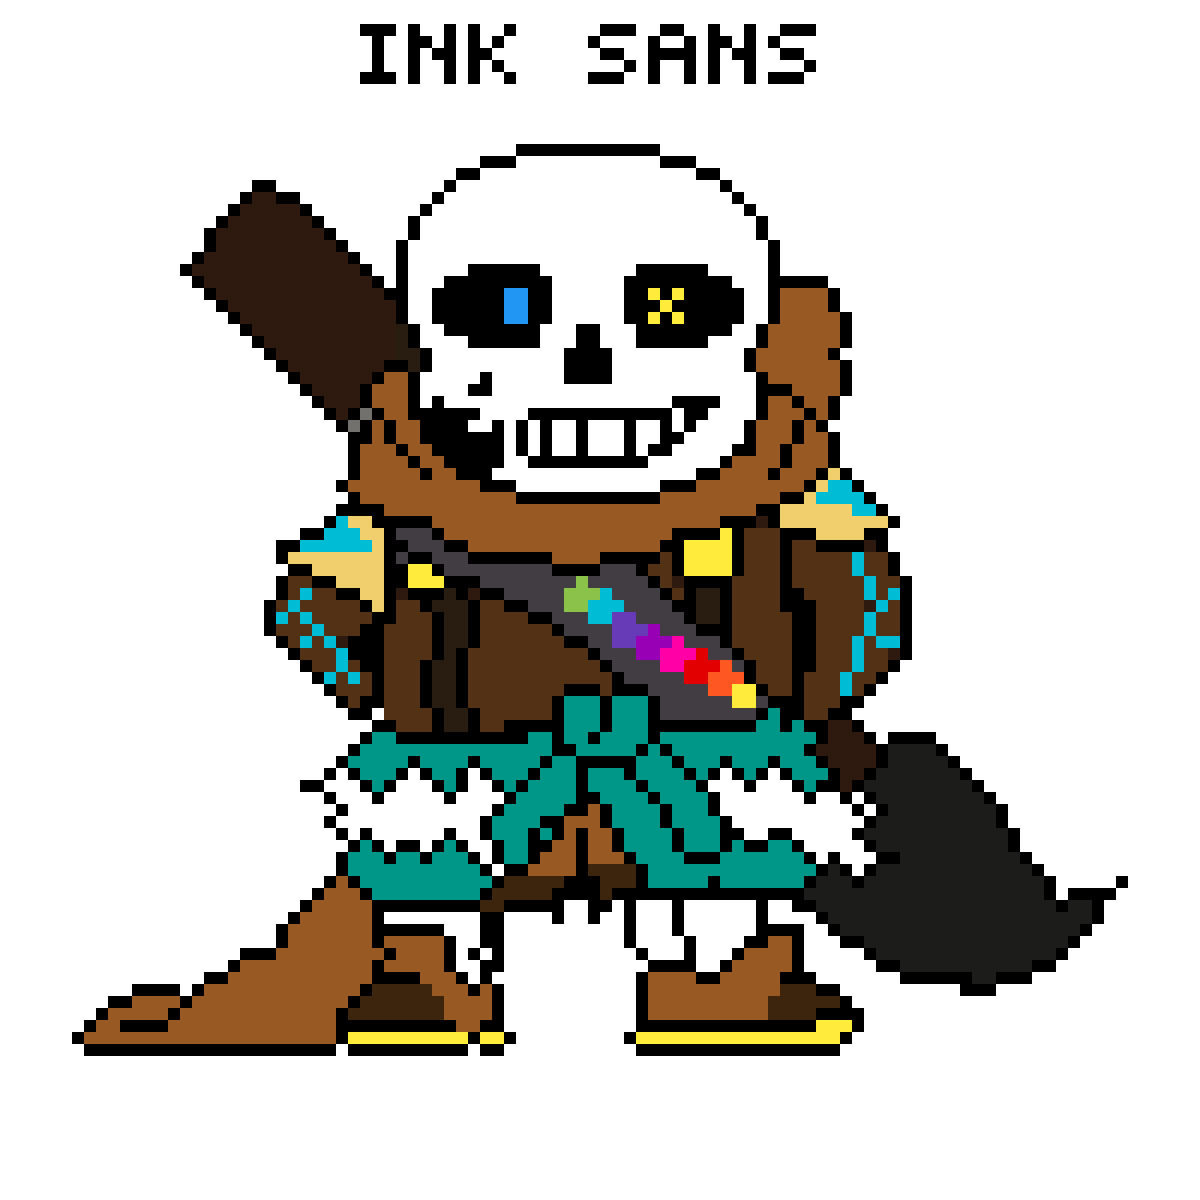 Ink sans png. Pixilart by underplayer colors